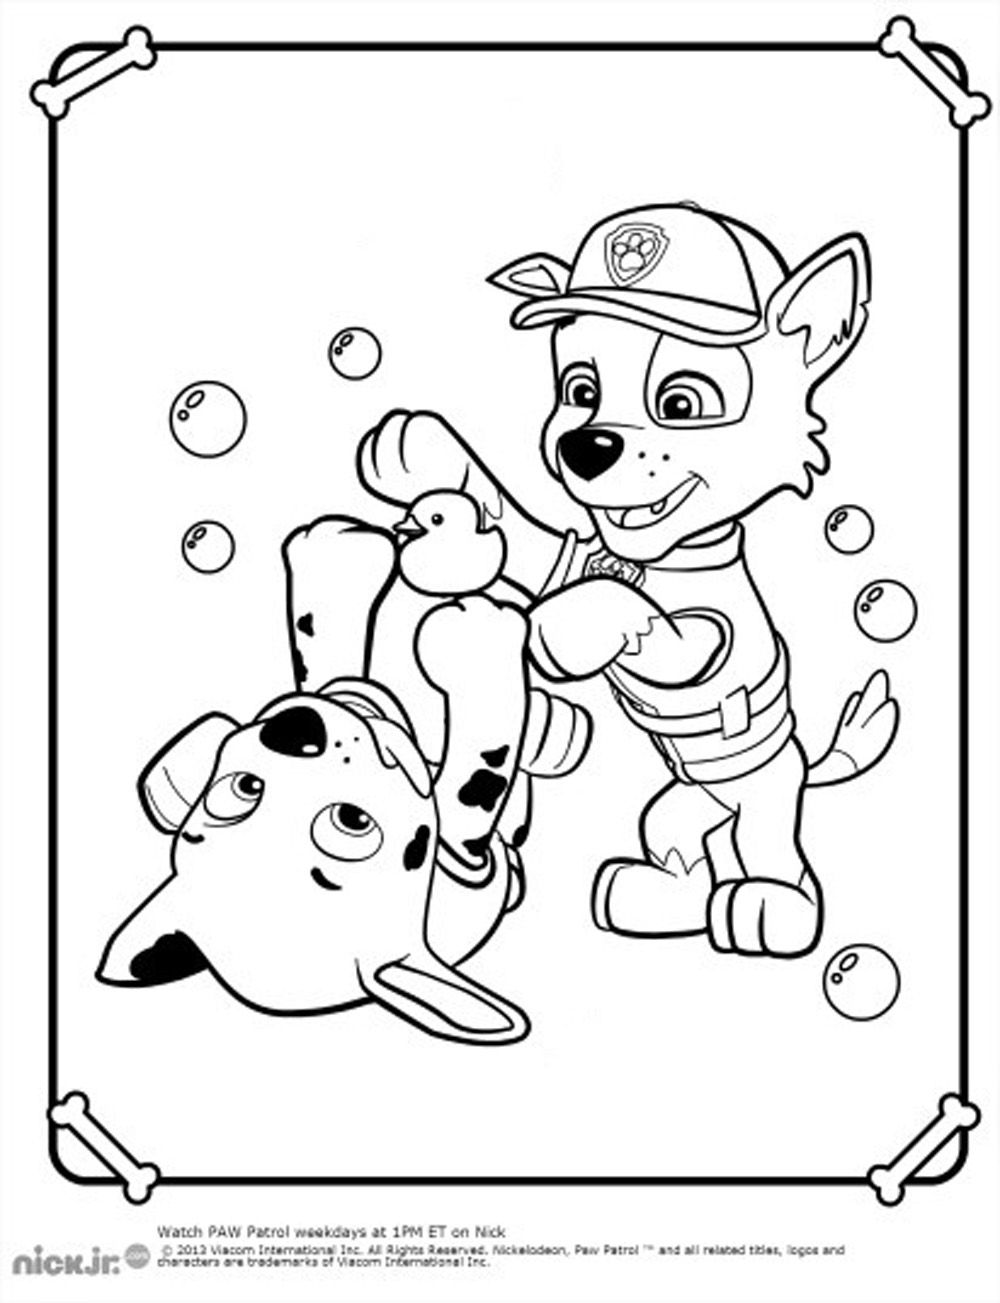 The Best Free Patrouille Coloring Page Images Download From 6